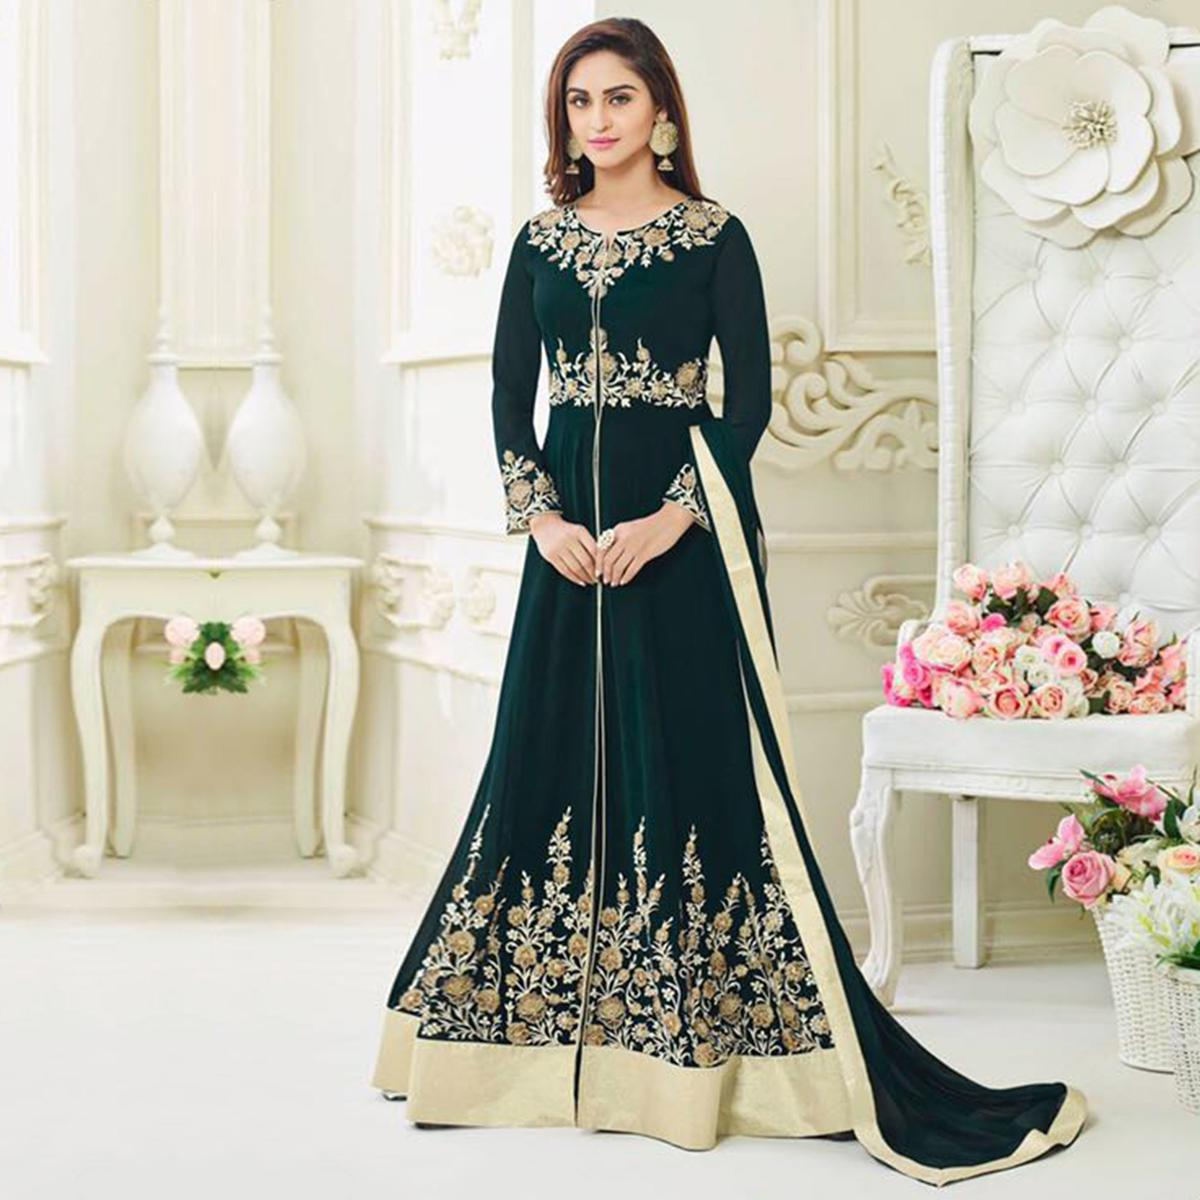 Elegant Teal Green Embroidered Anarkali Suit